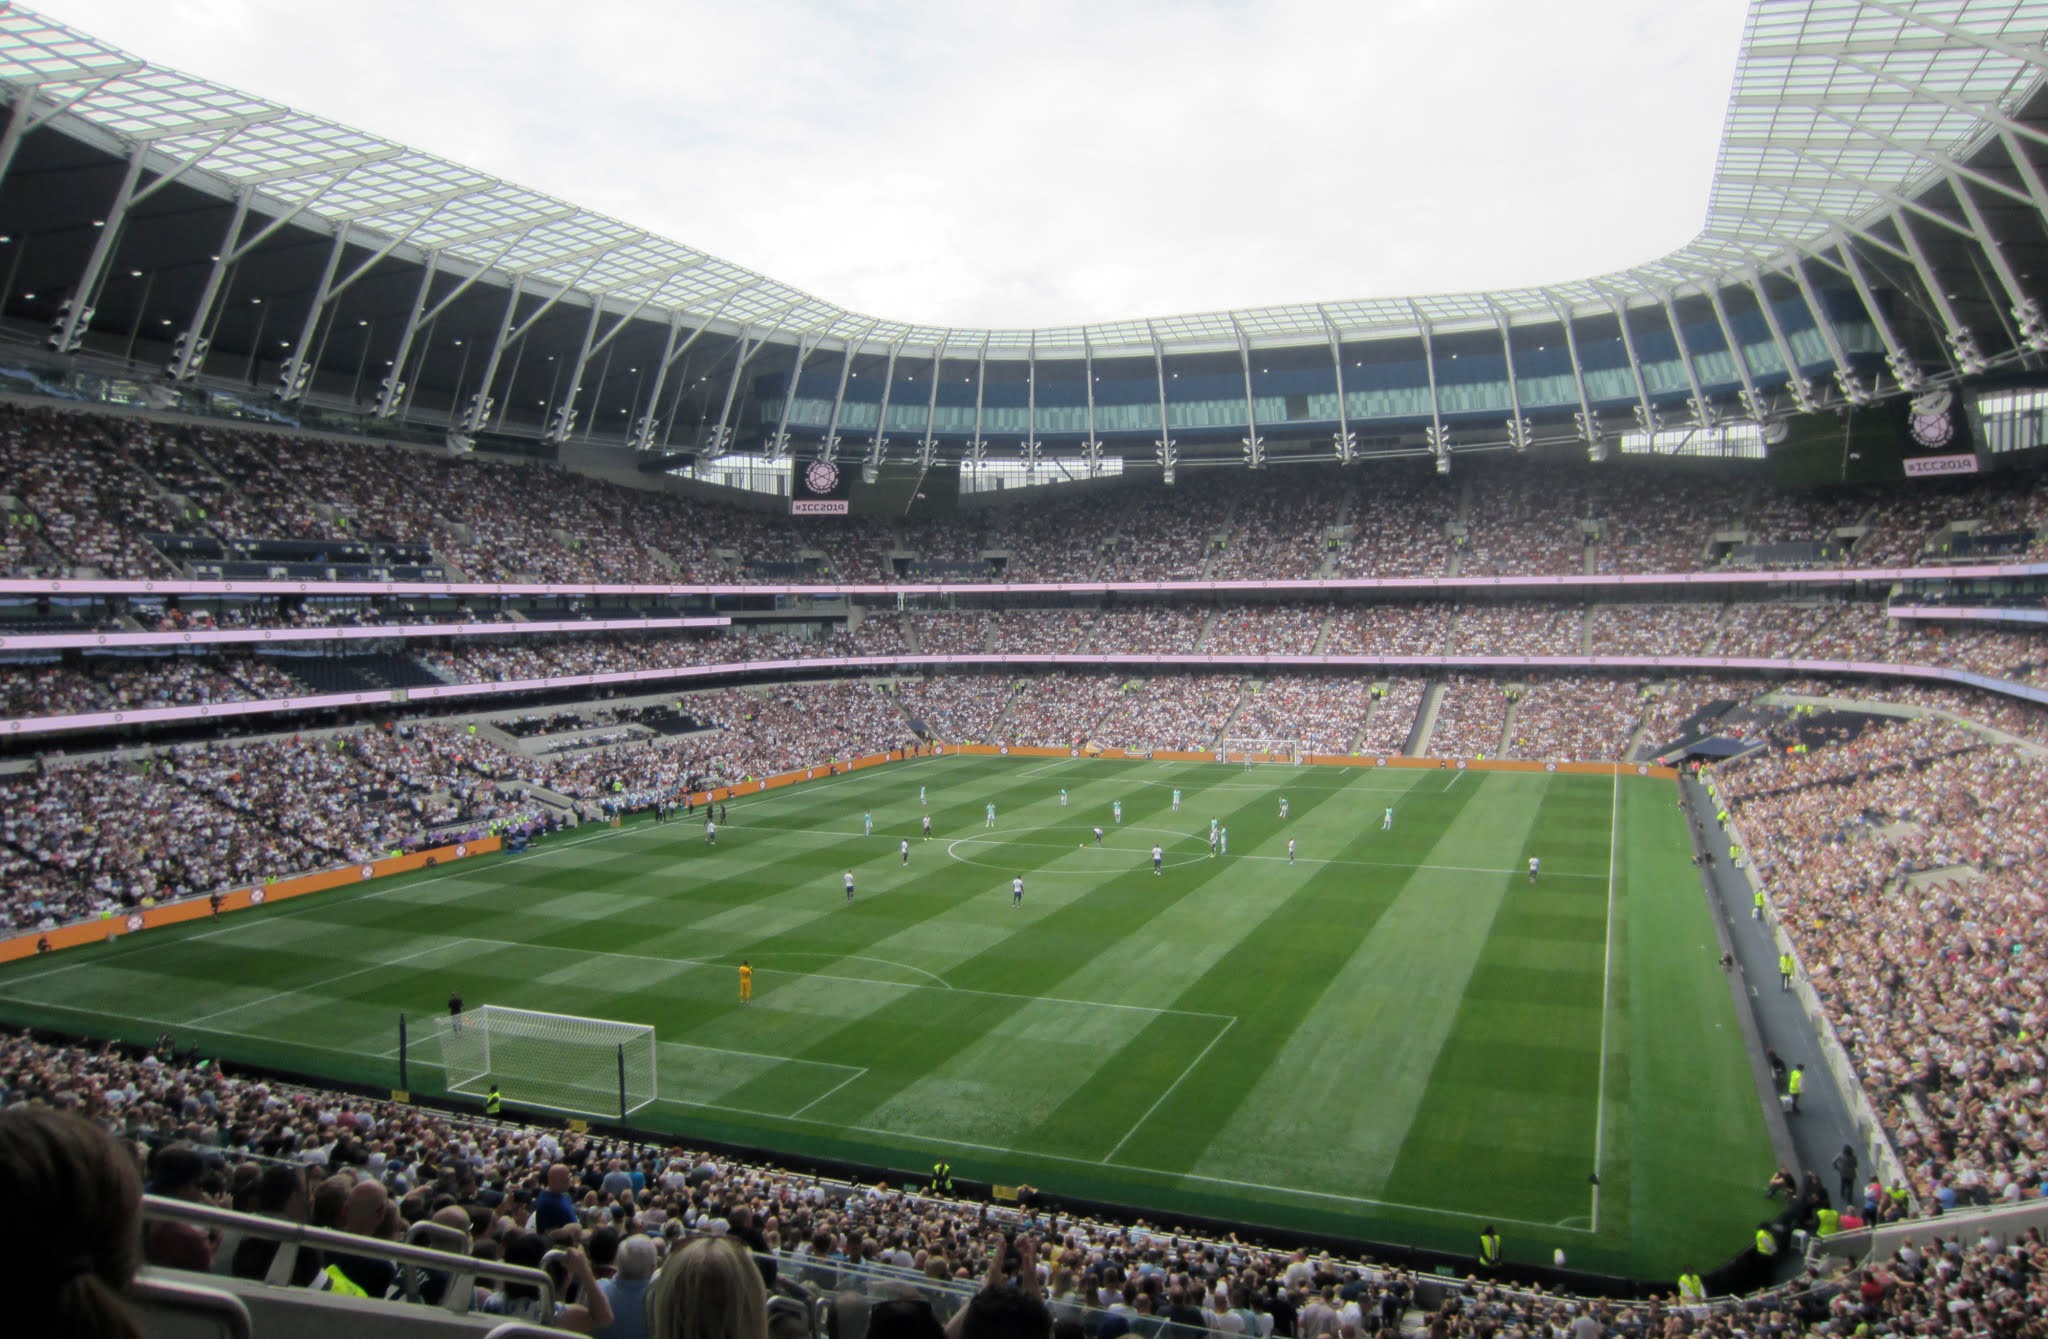 View of the pitch at Tottenham Hotspur Stadium